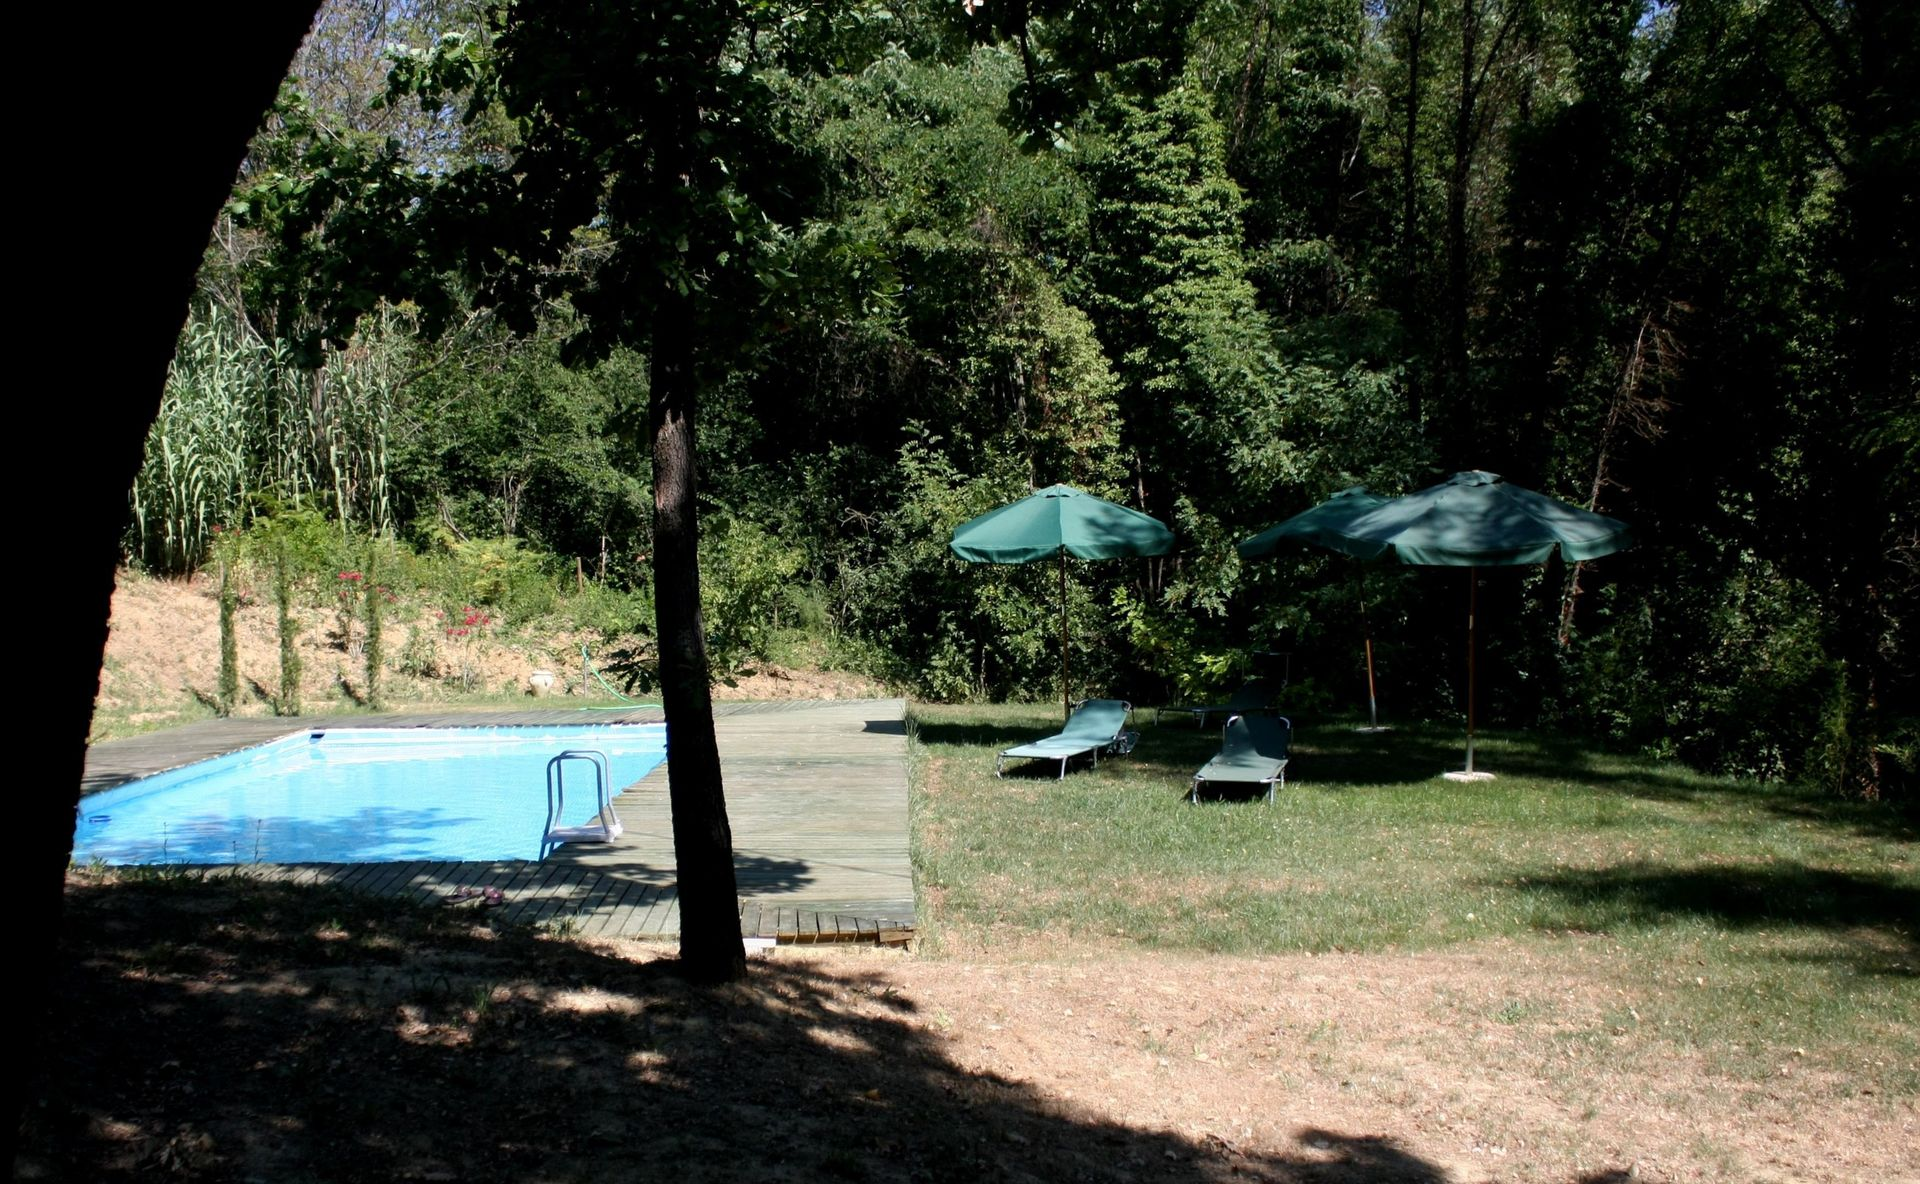 lari holiday rental tuscan villa pool + tennis located tuscany, italy.